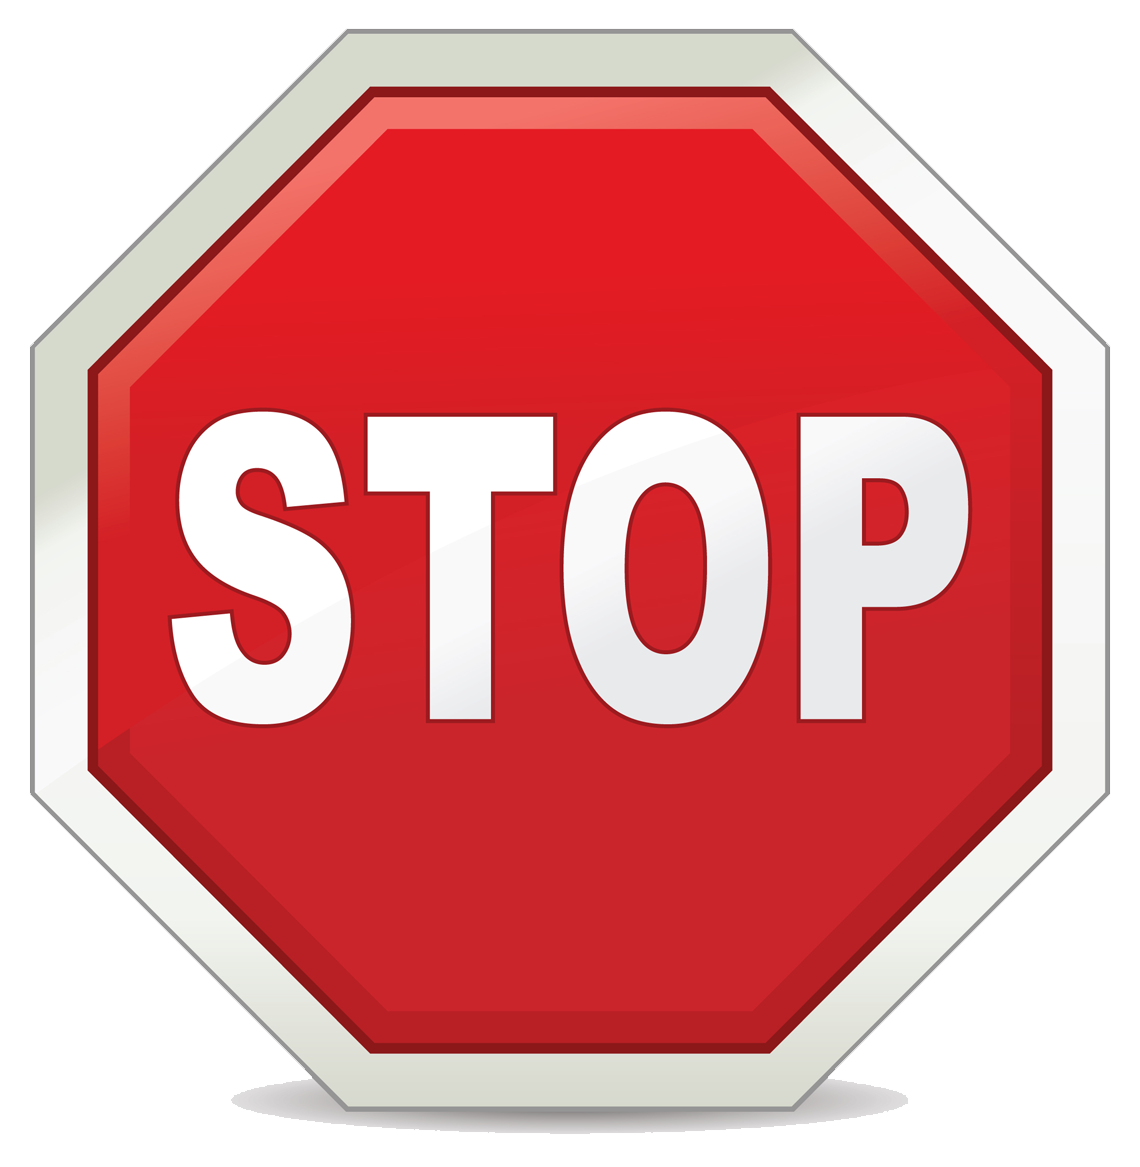 Stop Sign Png Clipart Download image #27220